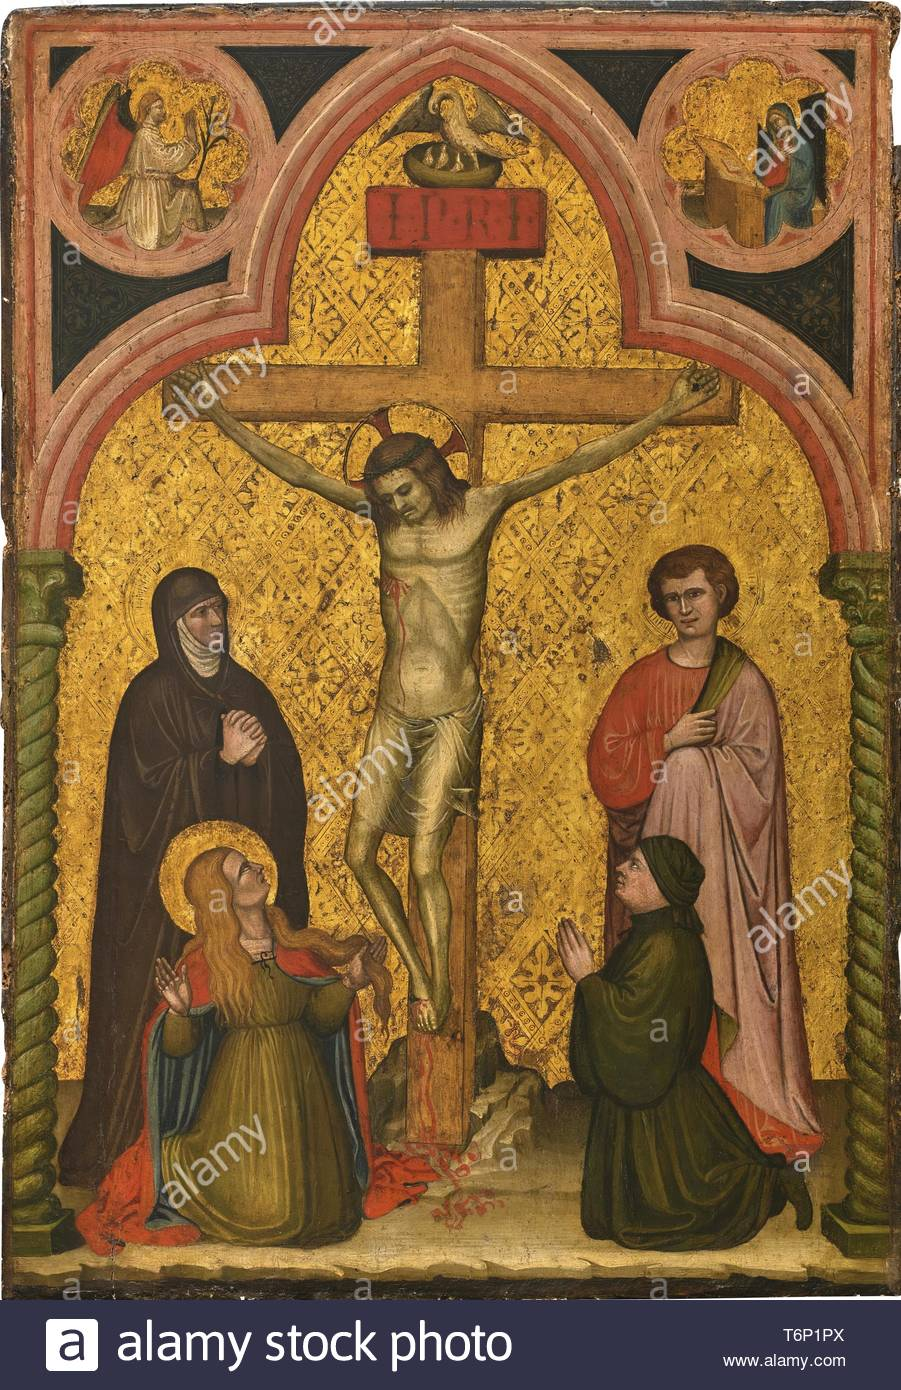 Antonio Di Pietro-The Crucifixion With The Madonna, Saint John, Mary Magdelene And A Donor; The Annunciation In The Spandrels Above - Stock Image